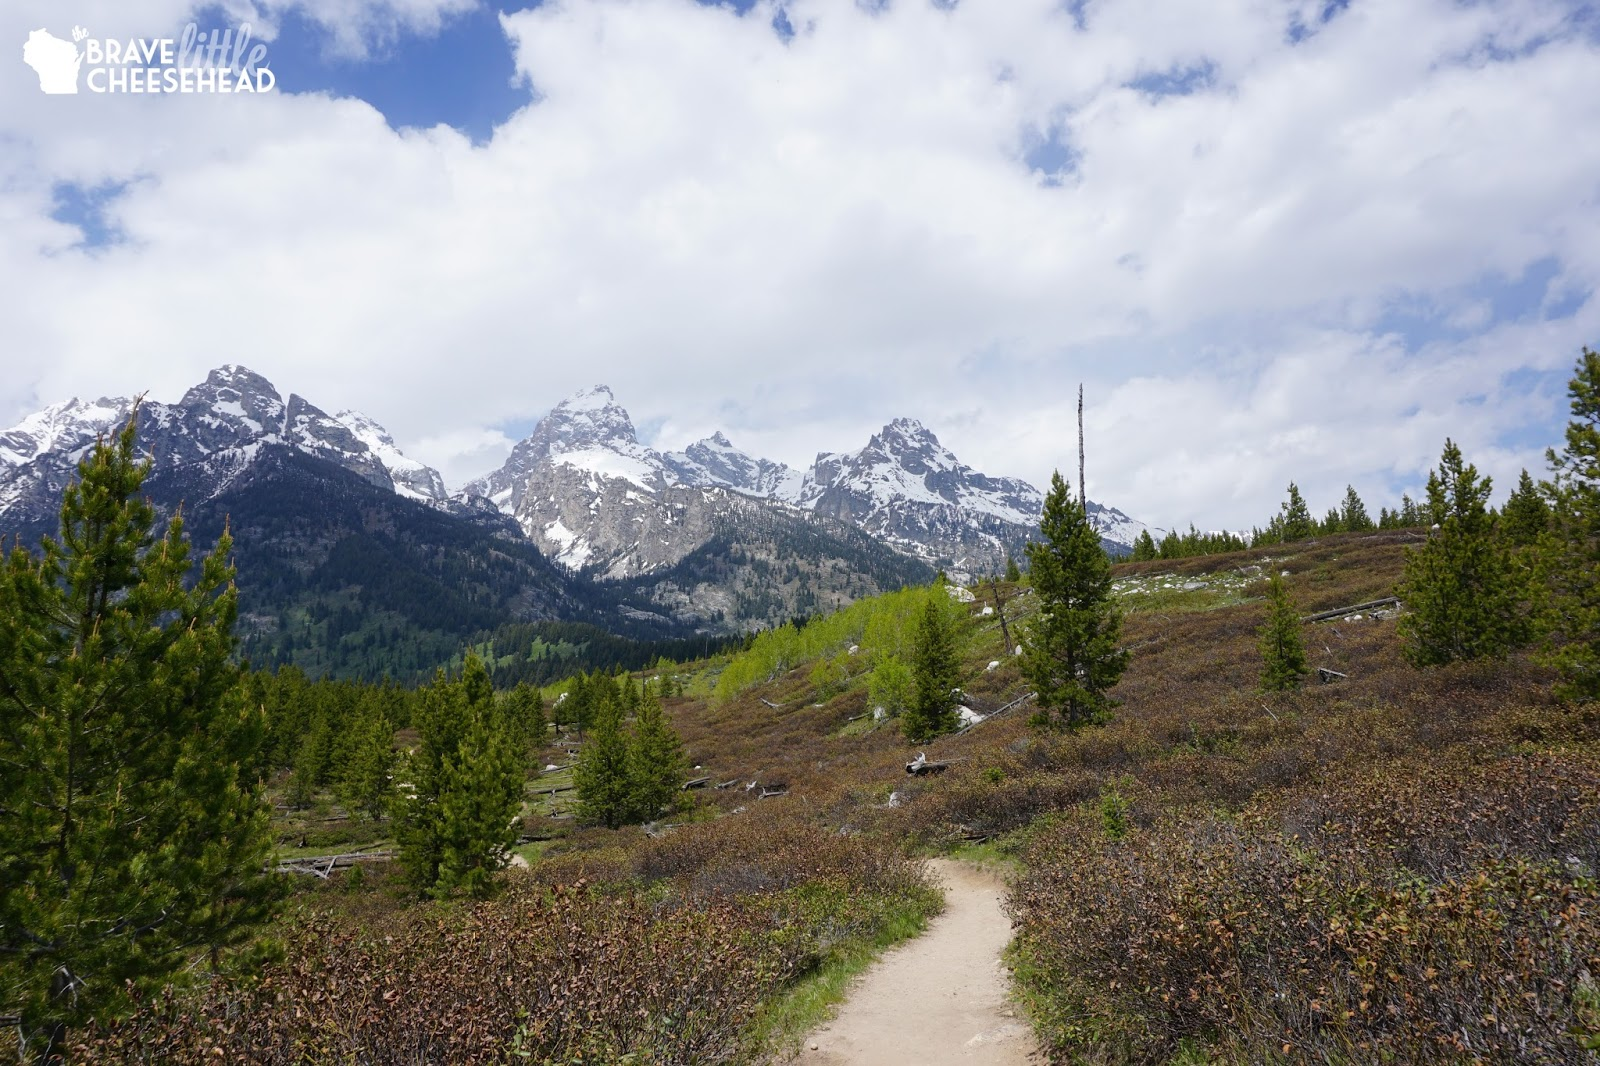 6 Day Hikes at Grand Teton National Park With Views You Can't Forget | The Brave Little Cheesehead